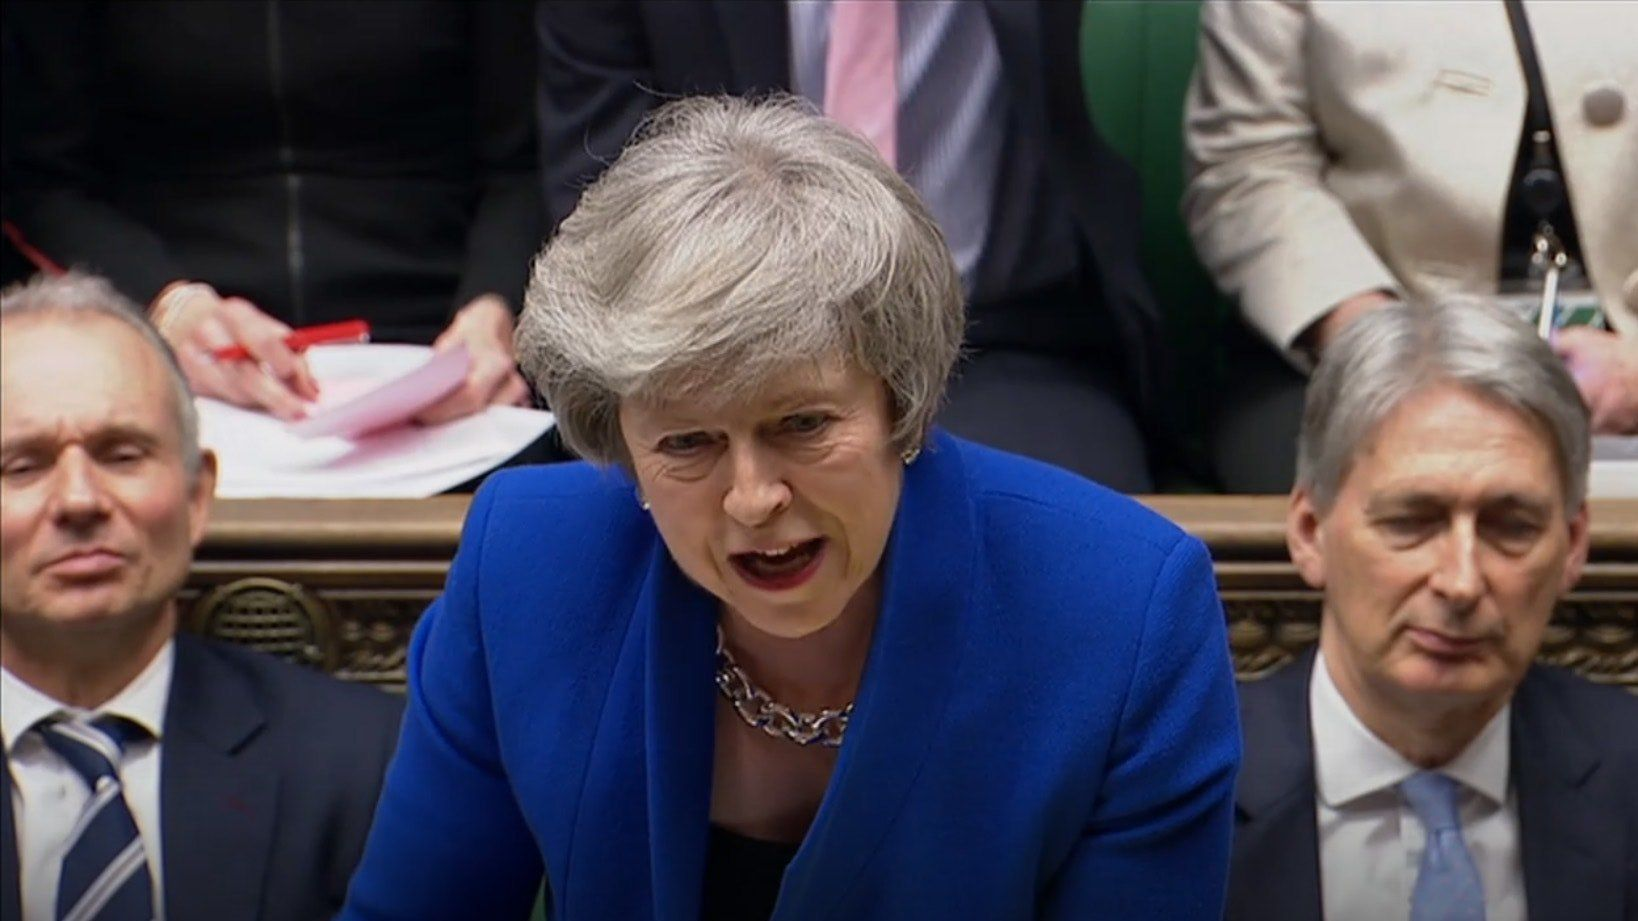 UK PM Theresa May survives no-confidence vote